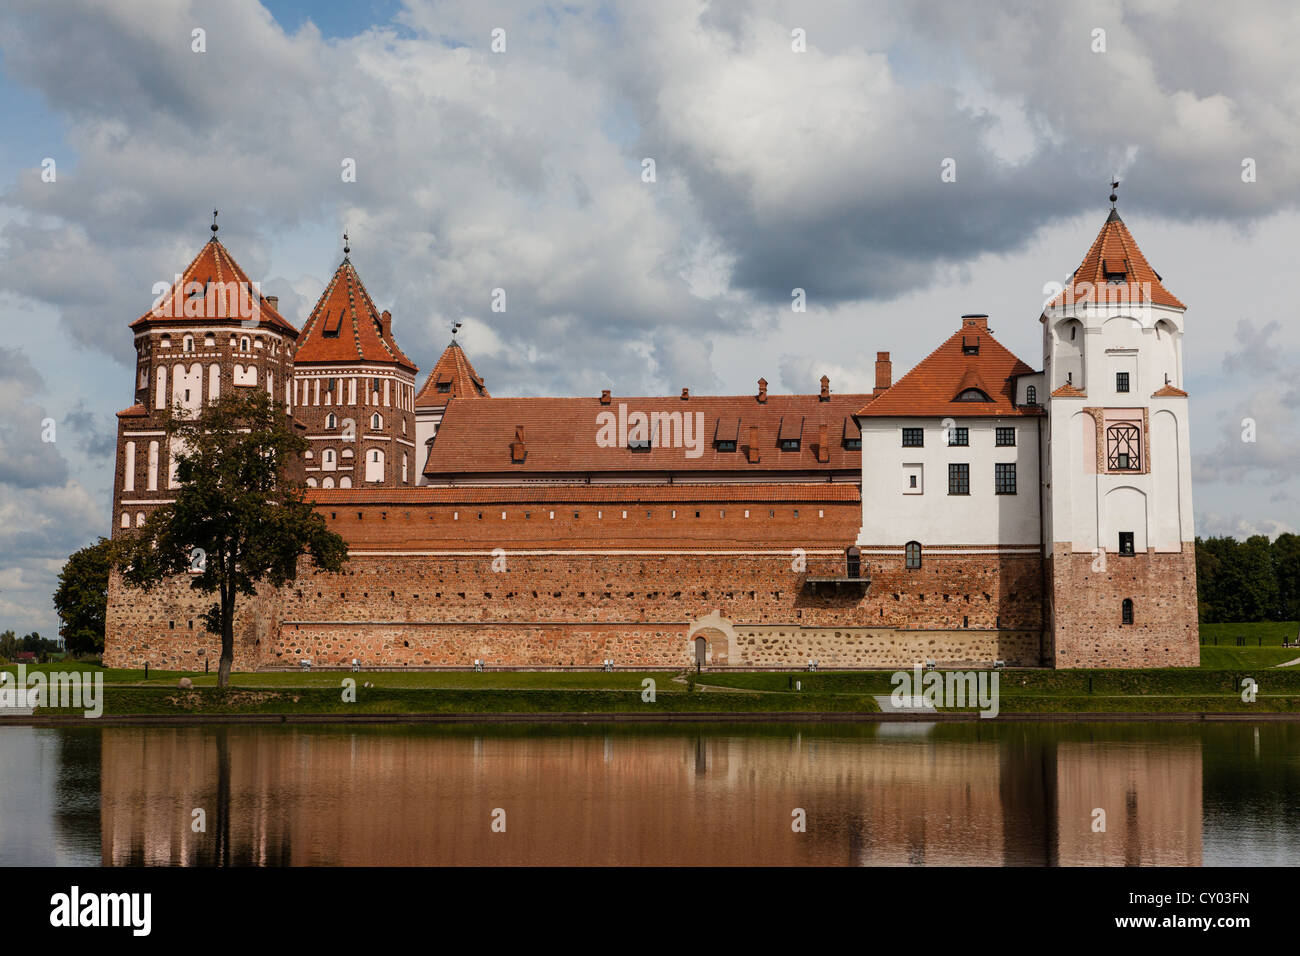 Mirsky Castle Complex (also known as Mir Castle) in Belarus. - Stock Image